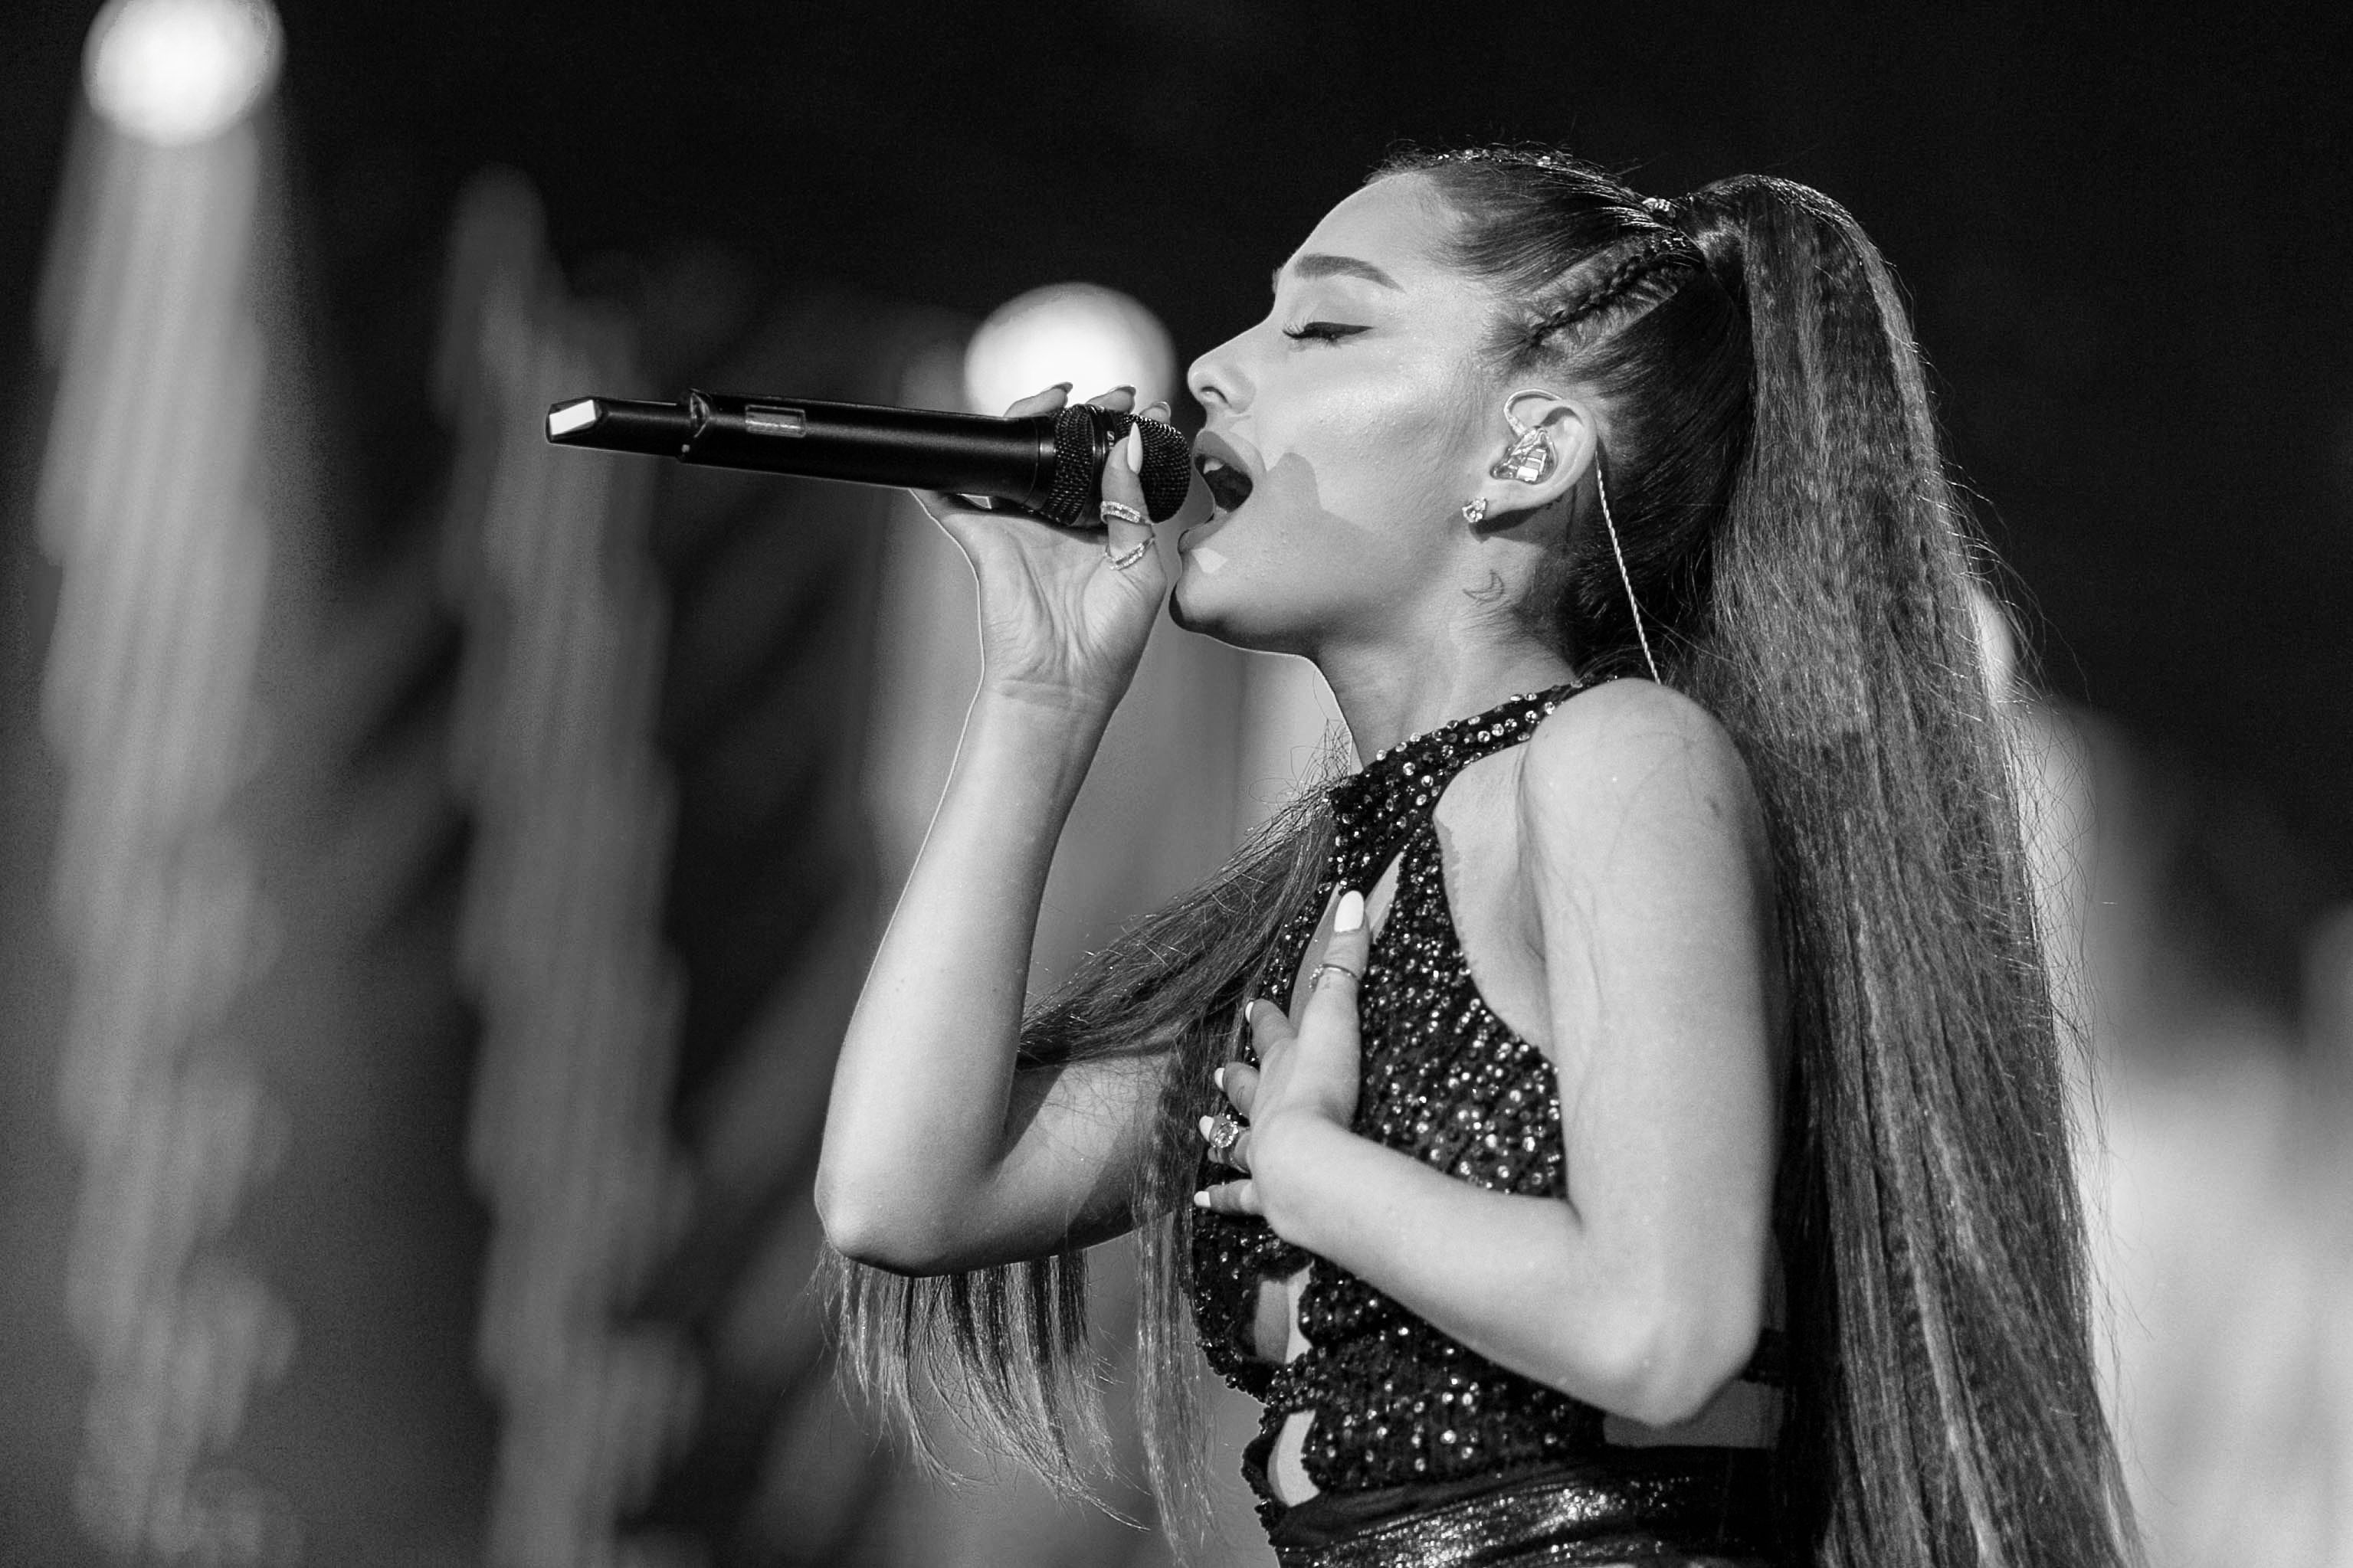 Who is ariana grande dating august 2019 hebrew